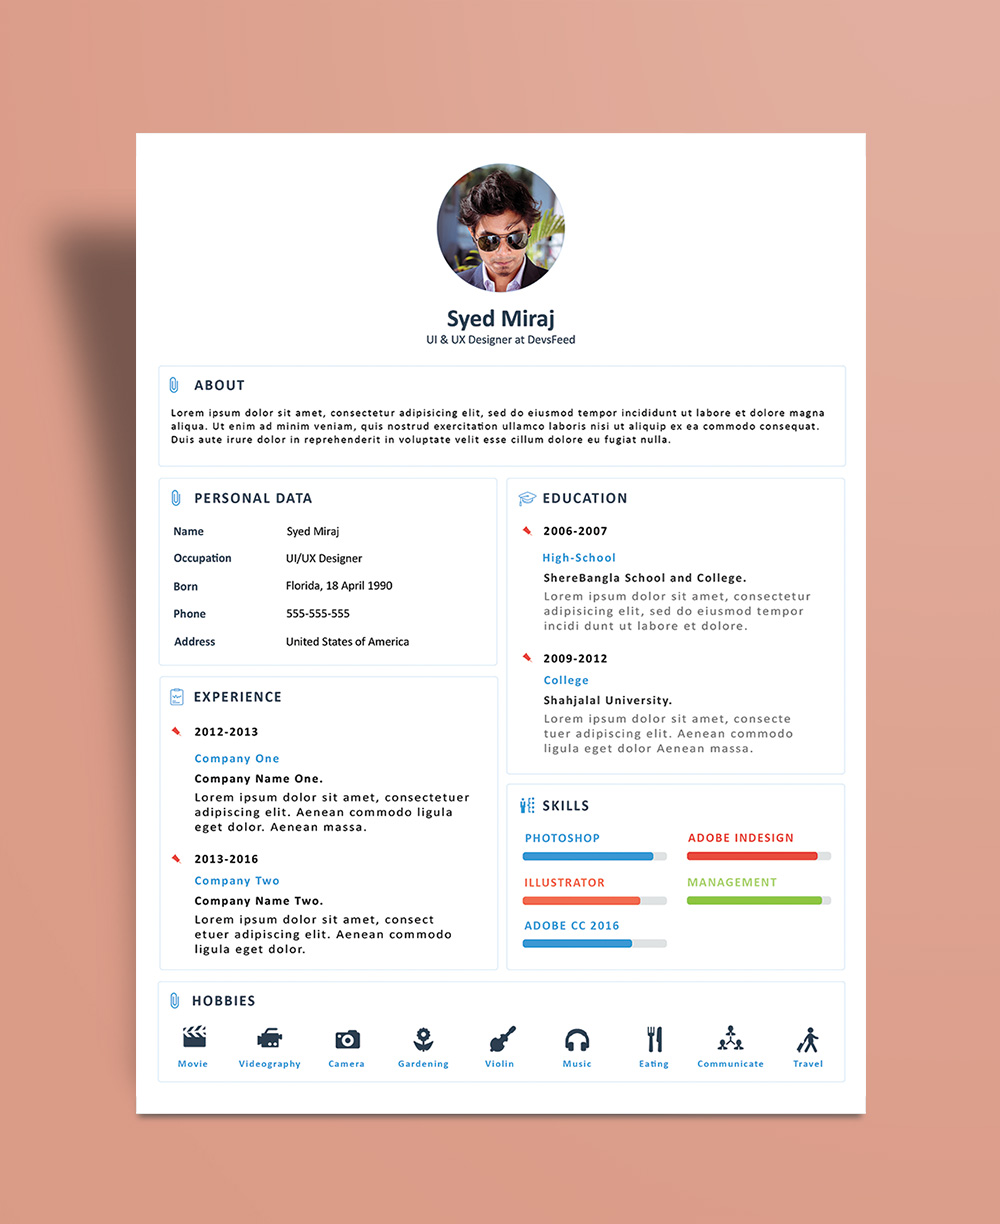 Free Simple Resume (CV) Design Template With Cover Letter PSD File (3)